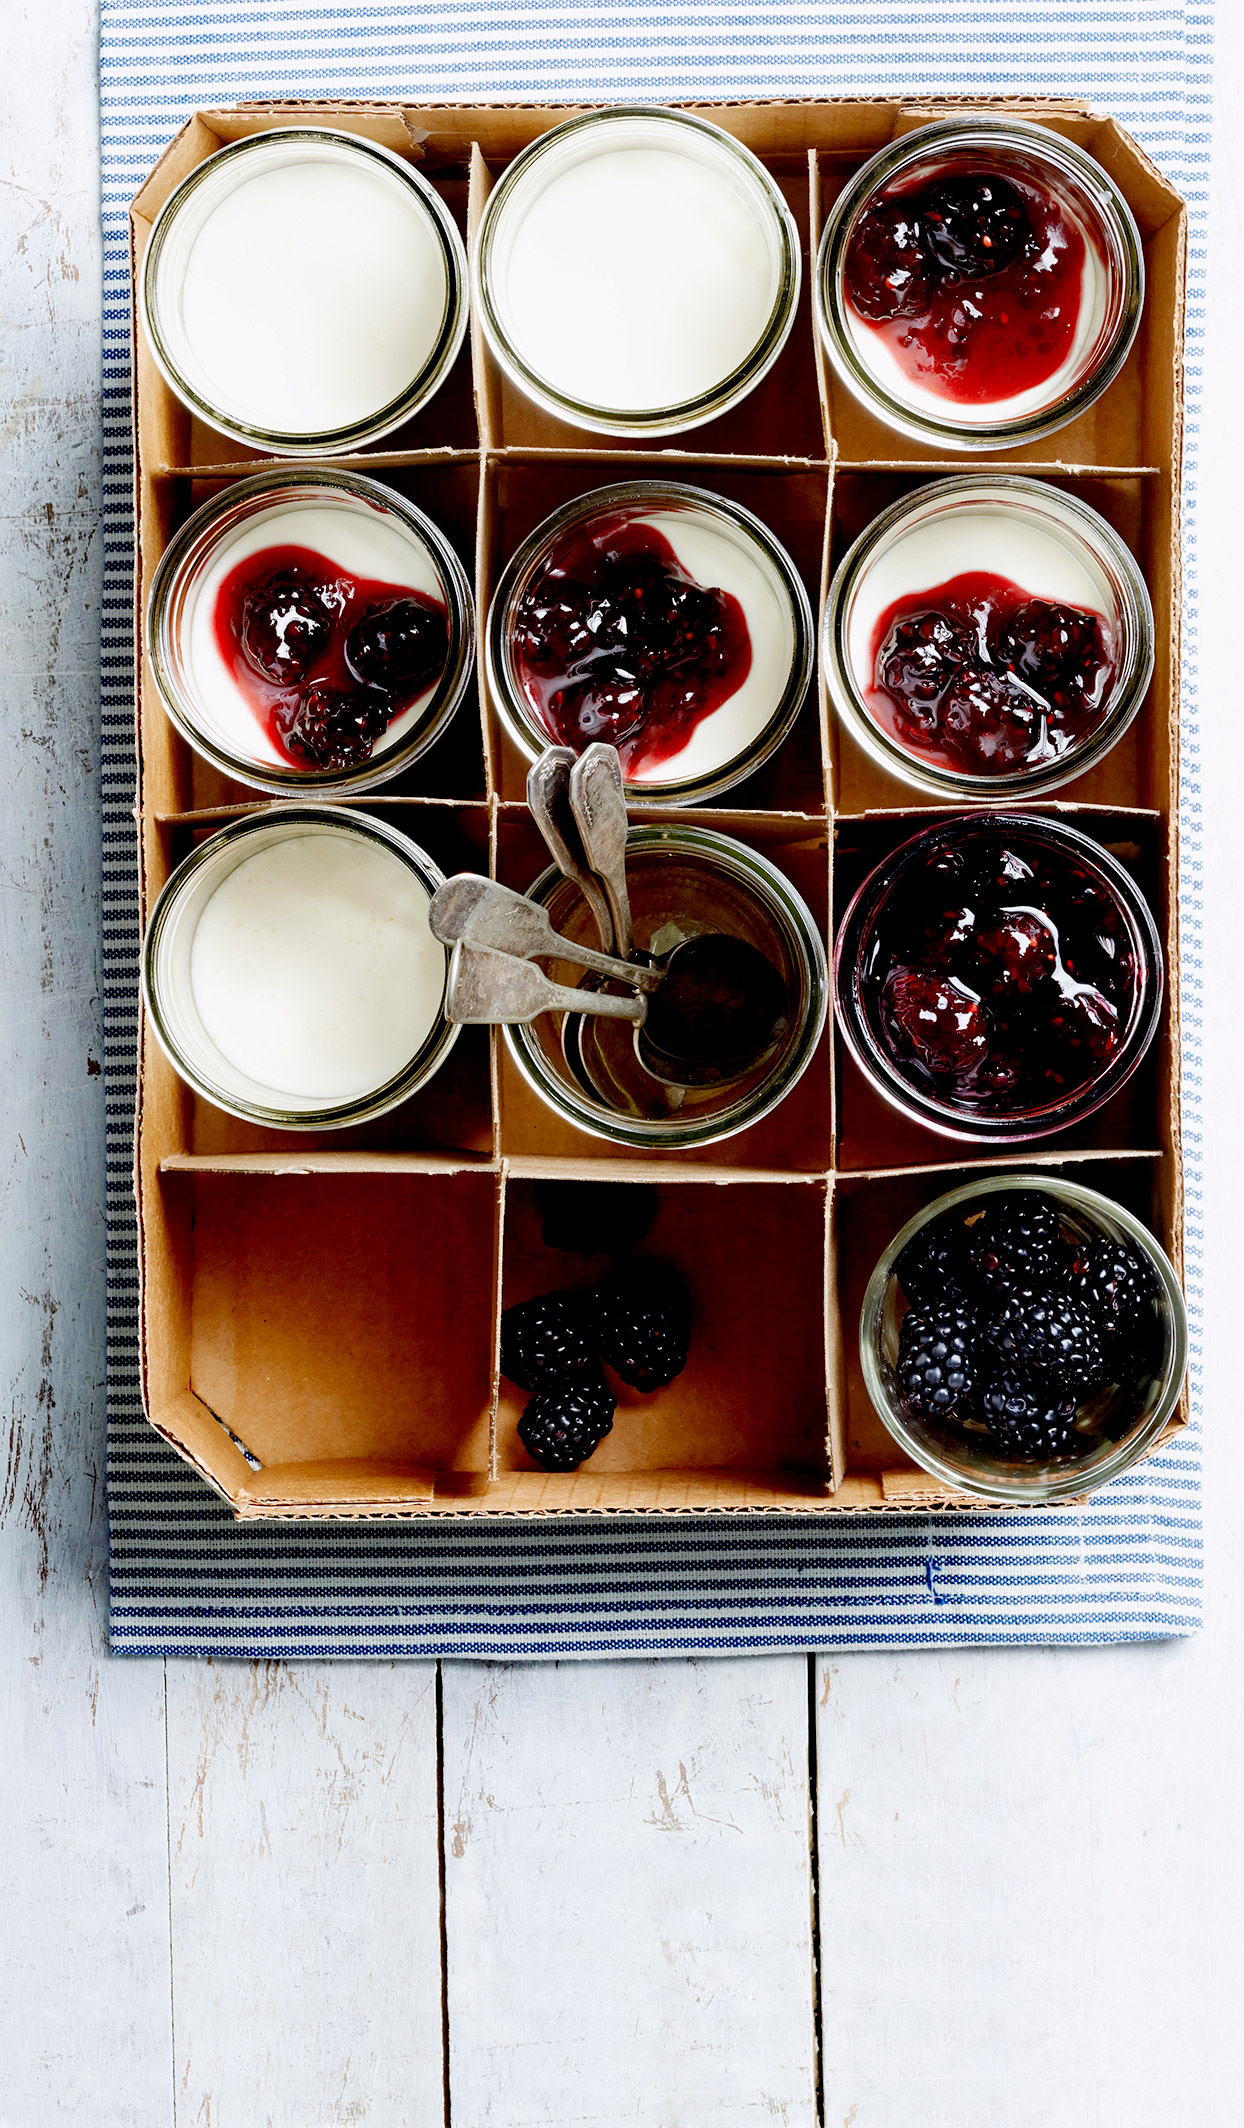 Blackberry-Lime Dessert Sauce